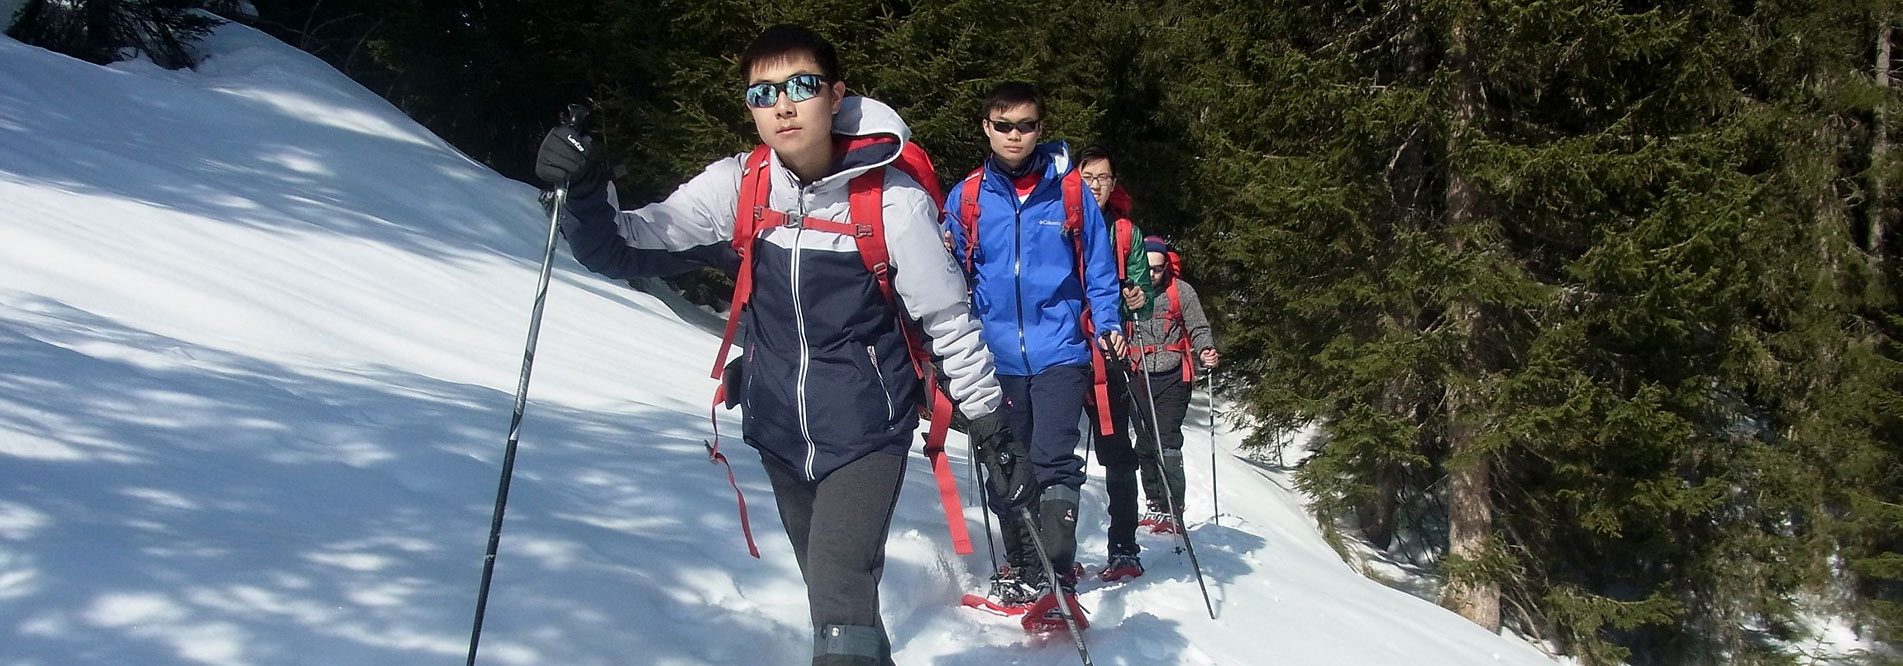 Snowshoeing: The schedule also contains outdoor education in winter, like here on a snowshoe tour in the Allgäu.